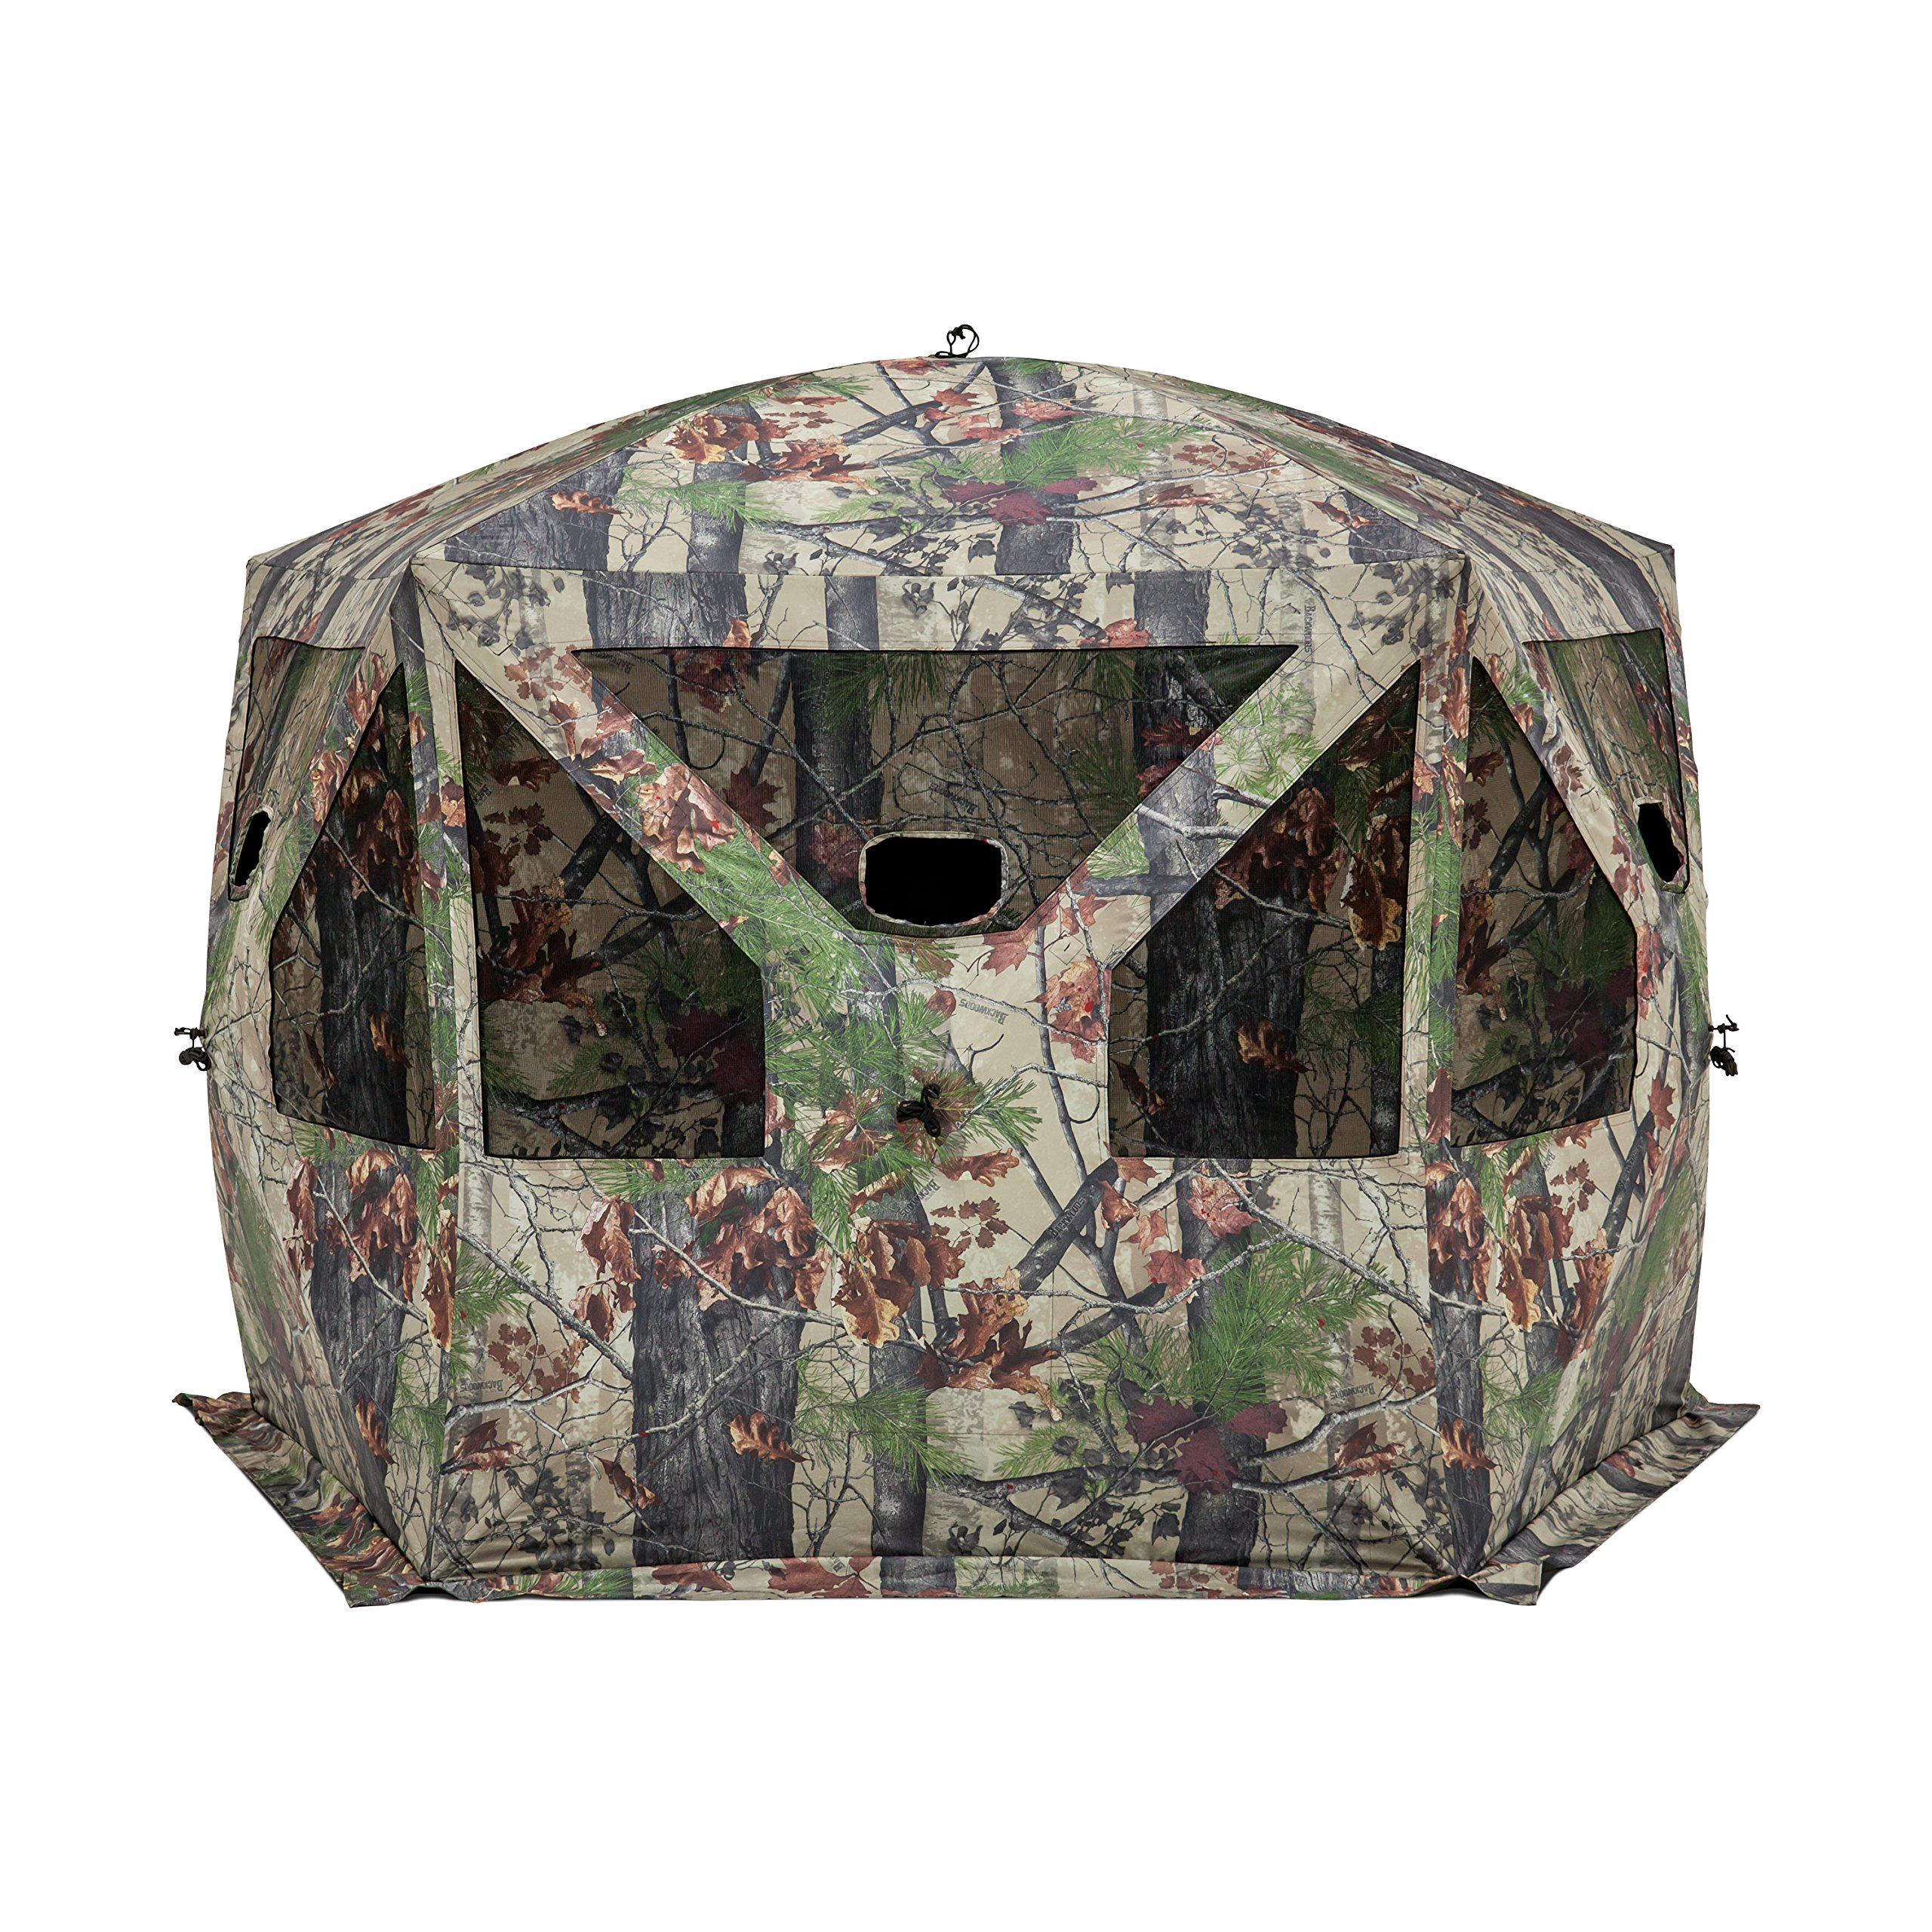 Barronett Blinds Pentagon Hunting Blind by Barronett Blinds